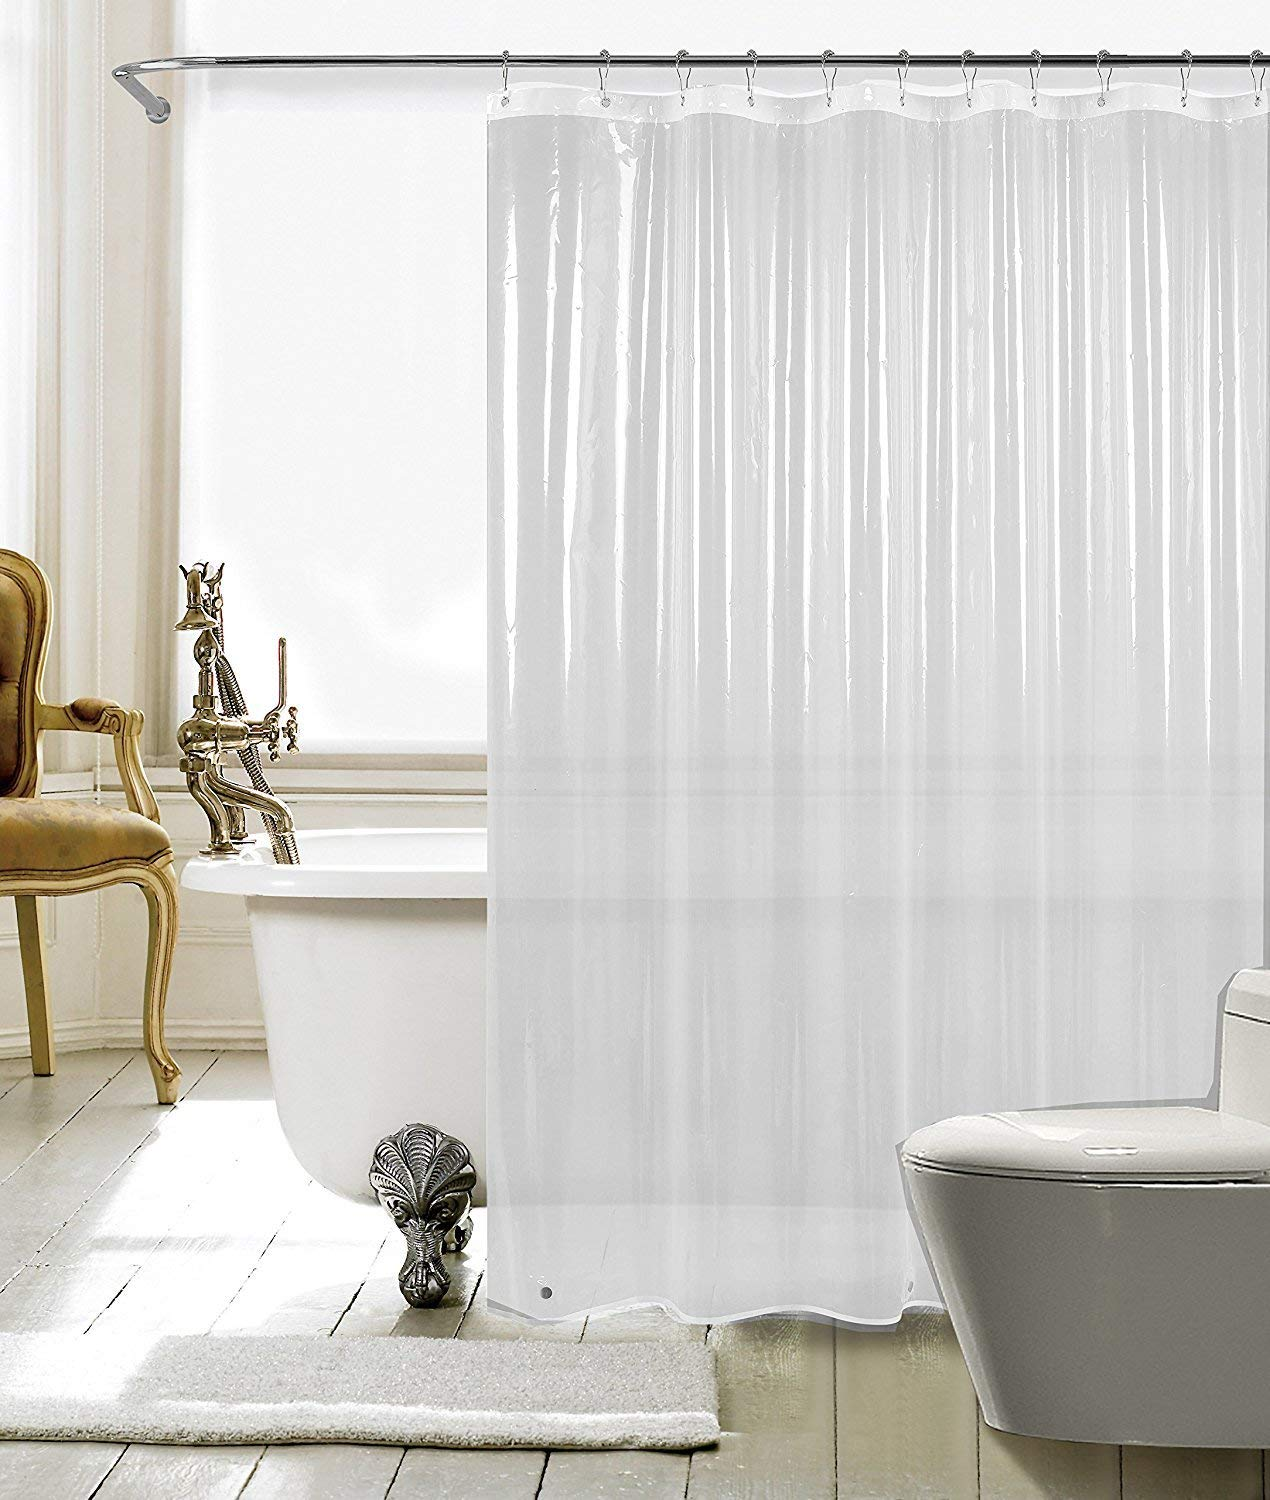 Get Quotations Fitnate Resistant Anti Bacterial PEVA Shower Curtain Liner 72x72 Clear015 MM